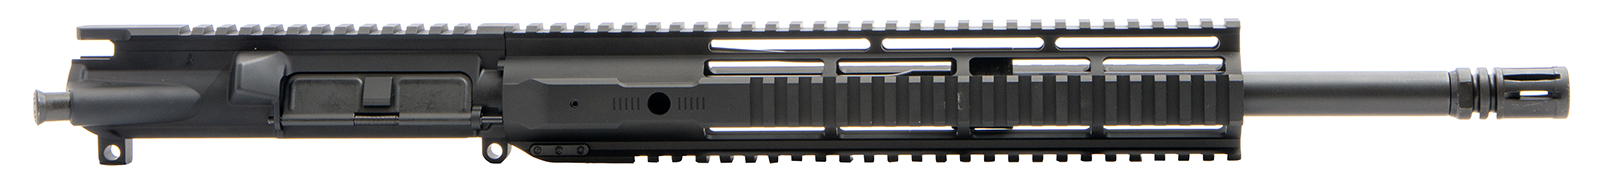 ar-15-upper-assembly-16-223-5-56-1-8-12-hera-arms-irs-unmarked-ar-15-handguard-rail